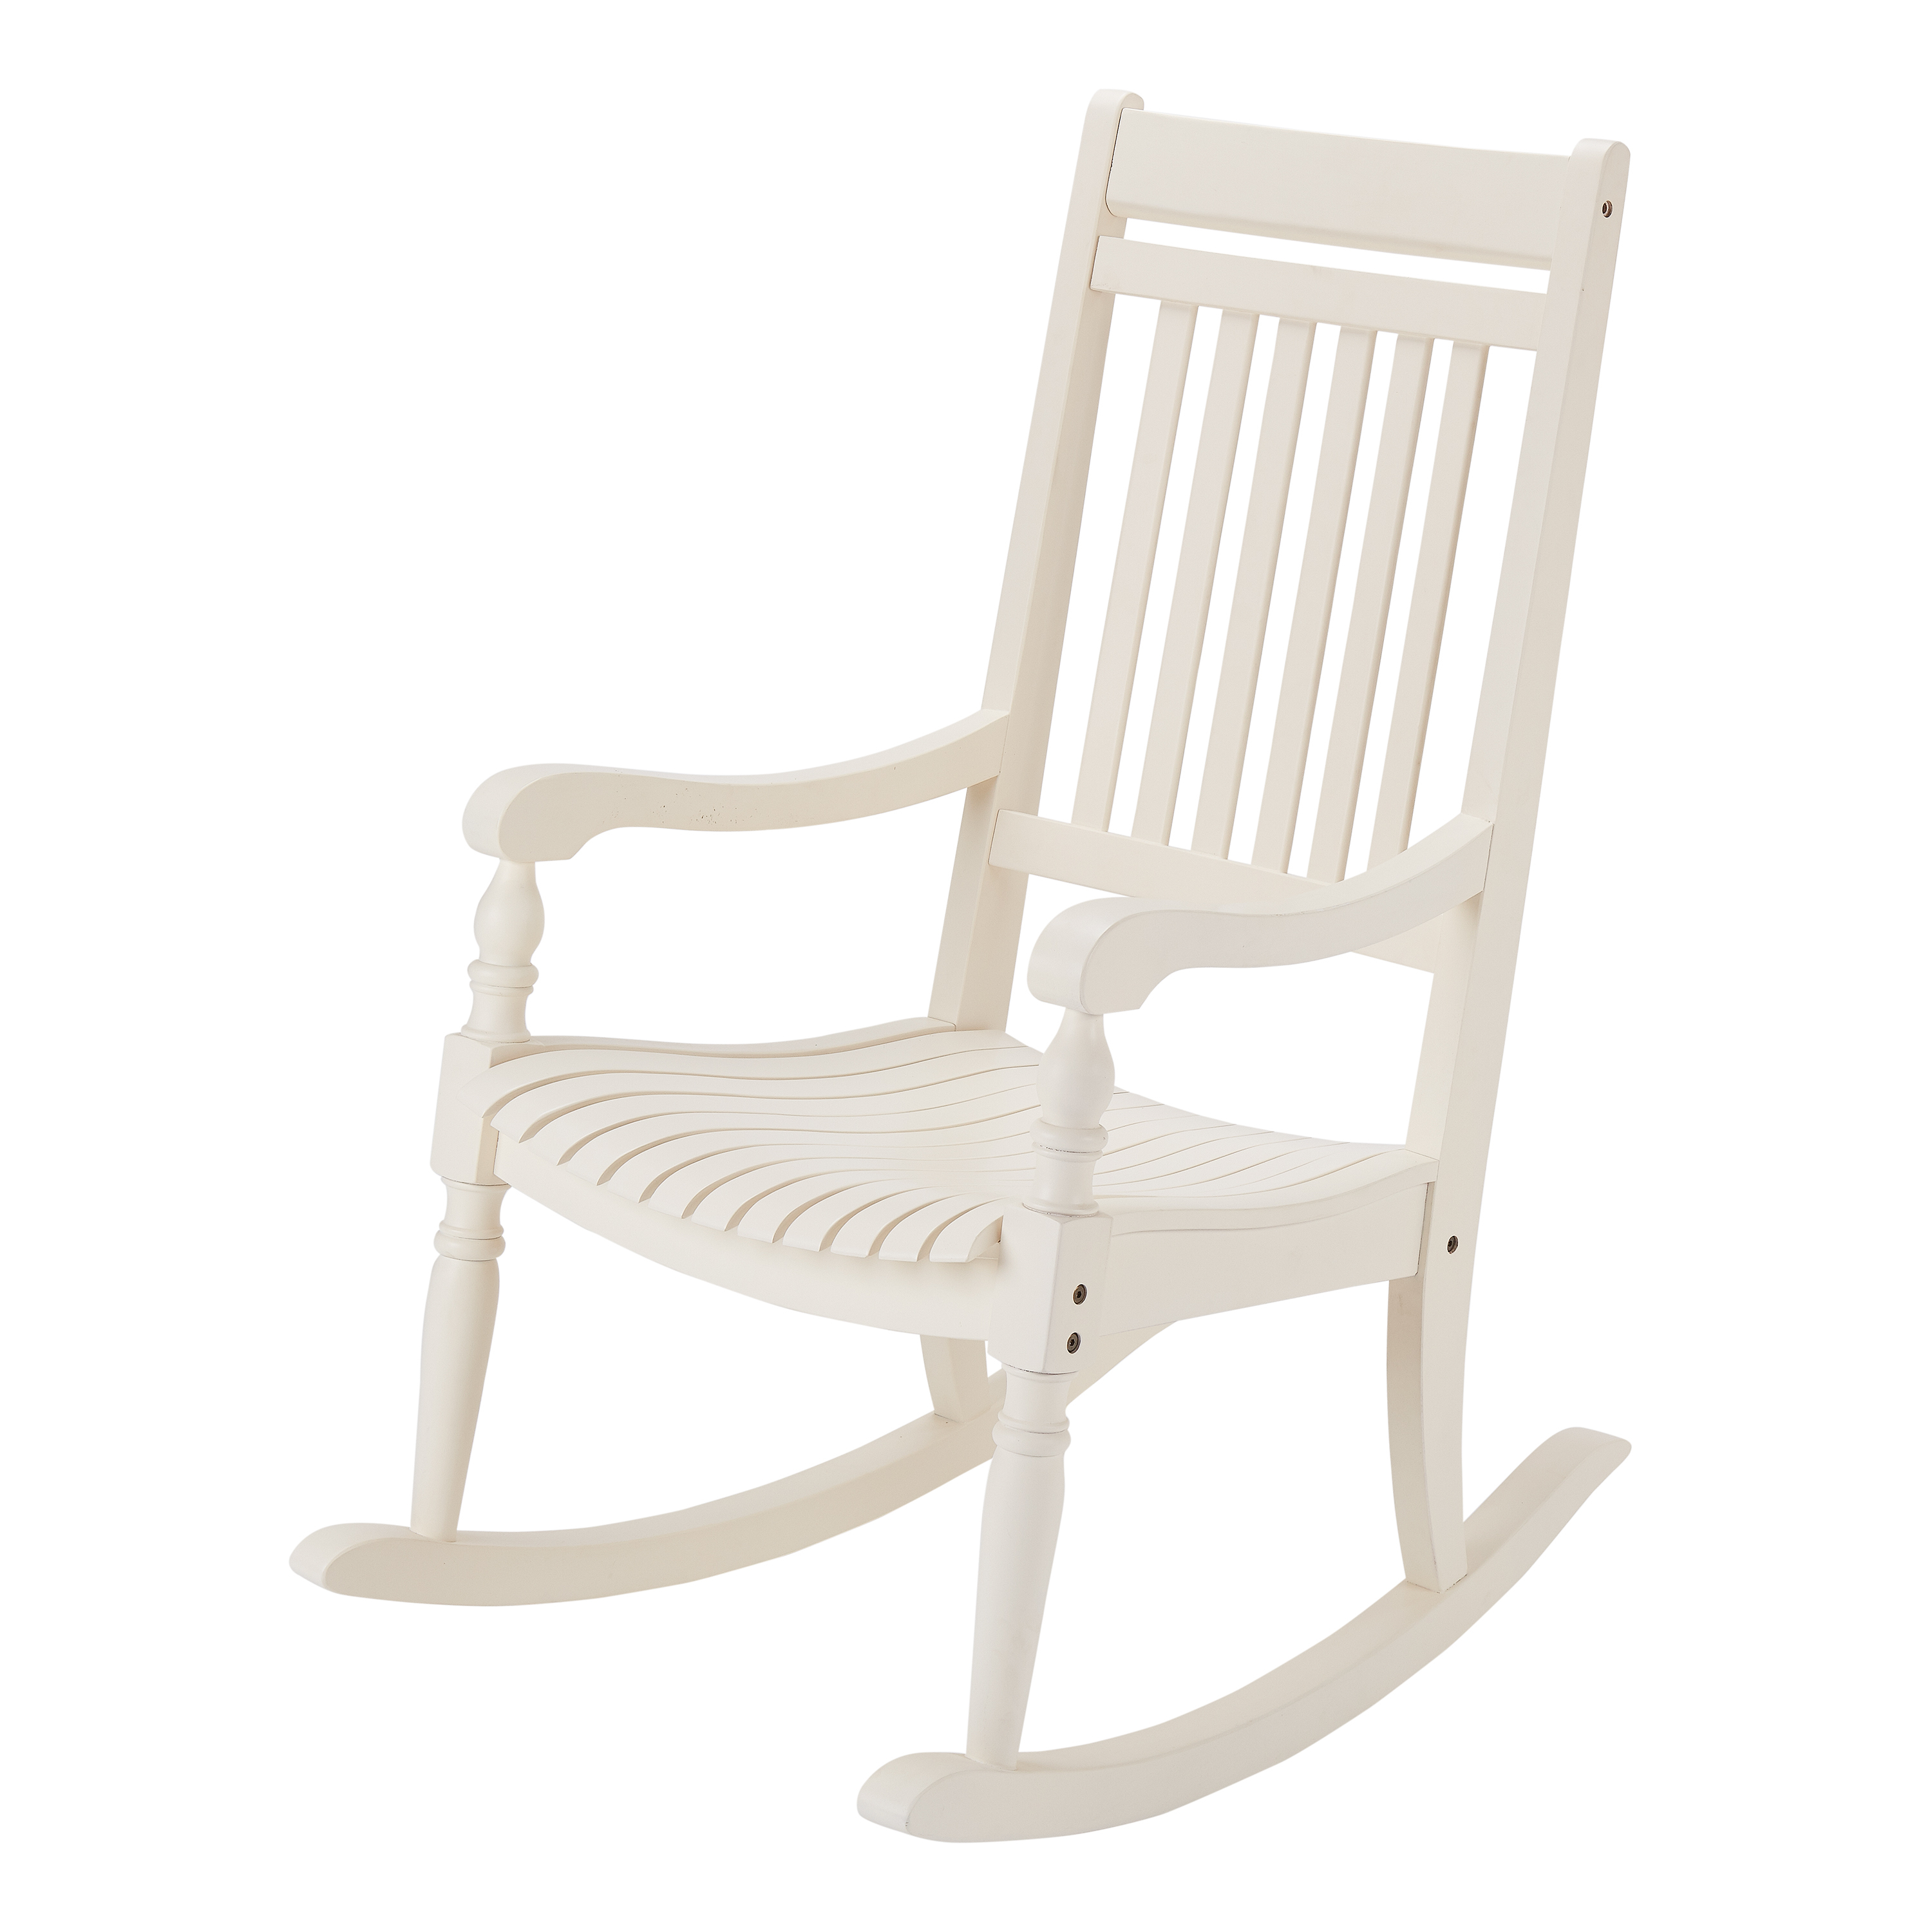 Better Homes & Gardens Ridgely Slat Back Mahogany Rocking Chair, White Throughout Rocking Chairs In Cream Fabric And White (#5 of 20)